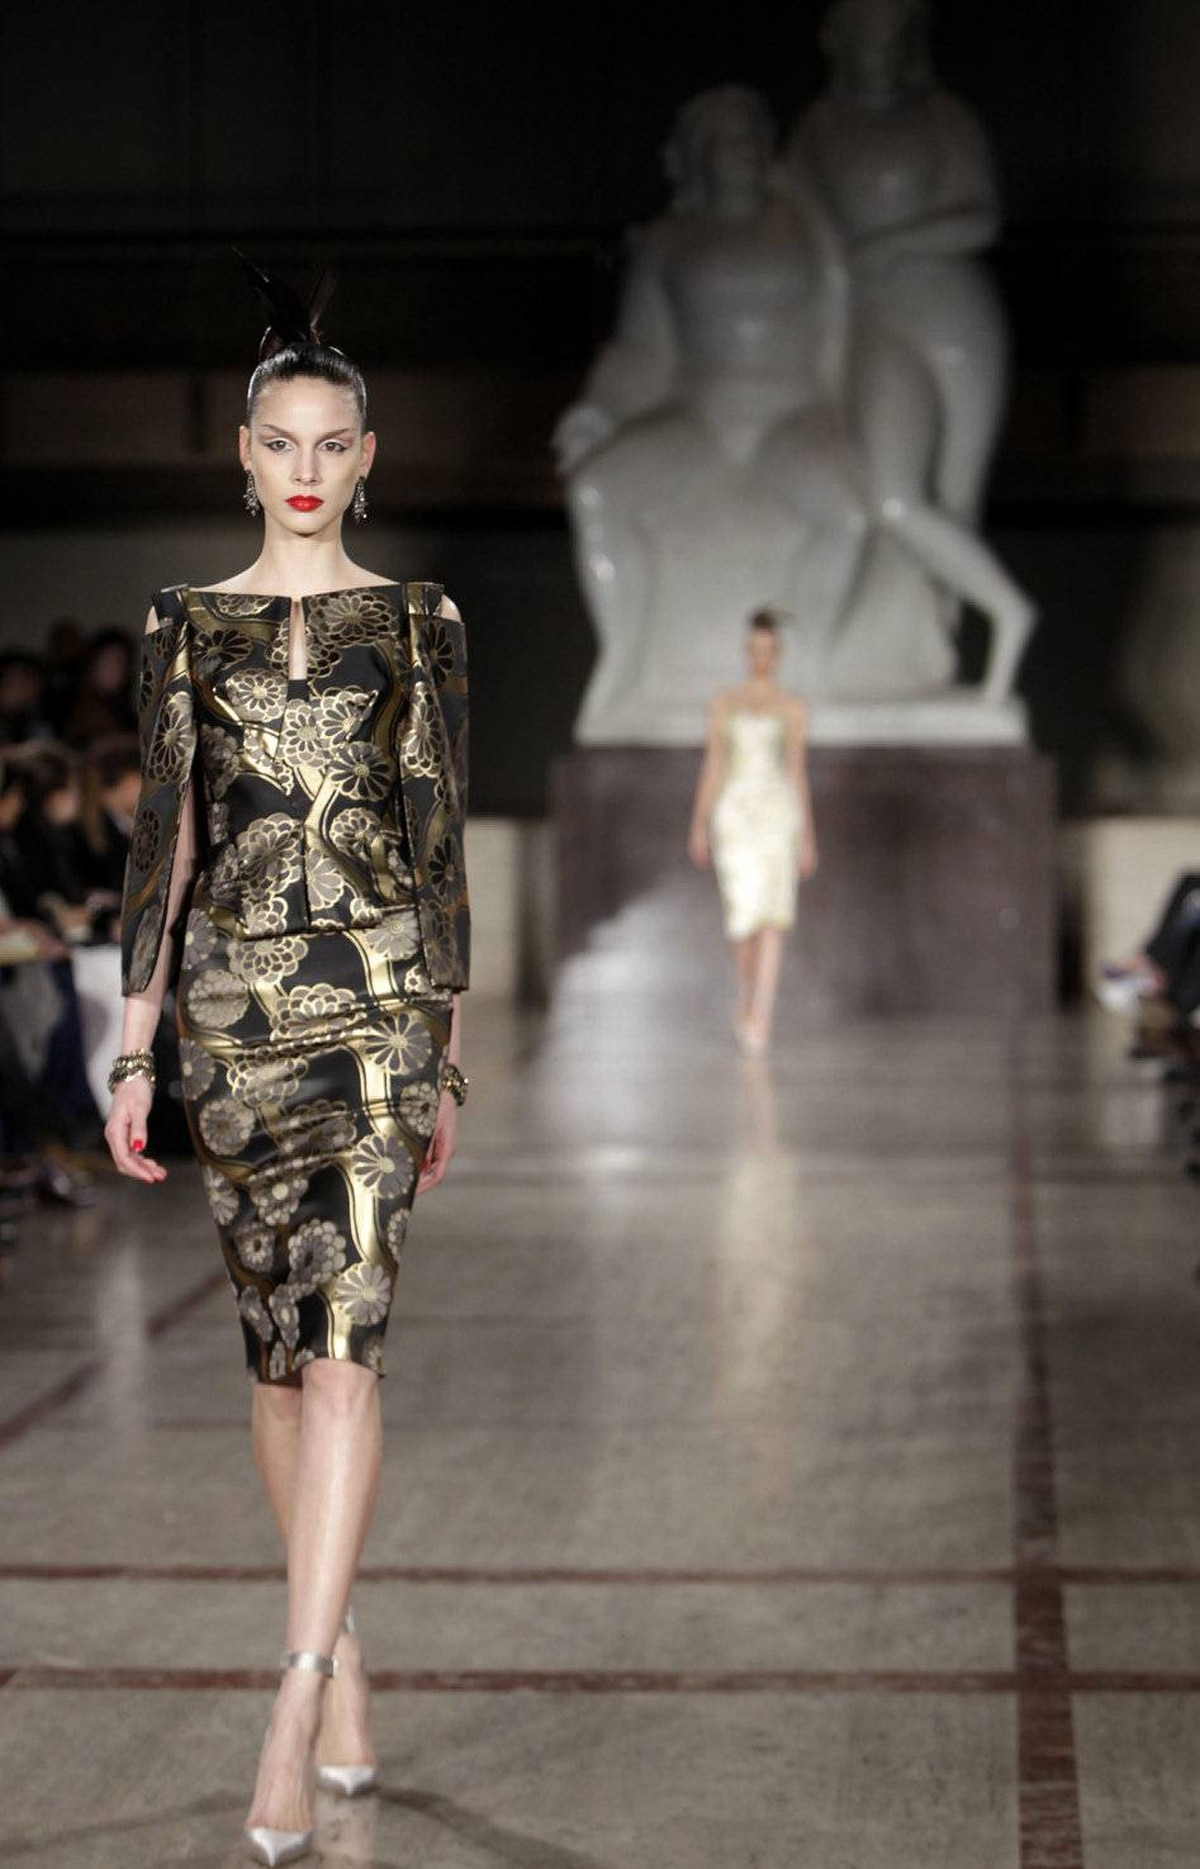 Like Jason Wu, Zac Posen also looked to Asia for inspiration, incorporating origami folds into dress backs and imperial Chinese motifs on dramatic dresses. Often though, the shorter skirts were too constricting and the mermaid hemlines much too much.